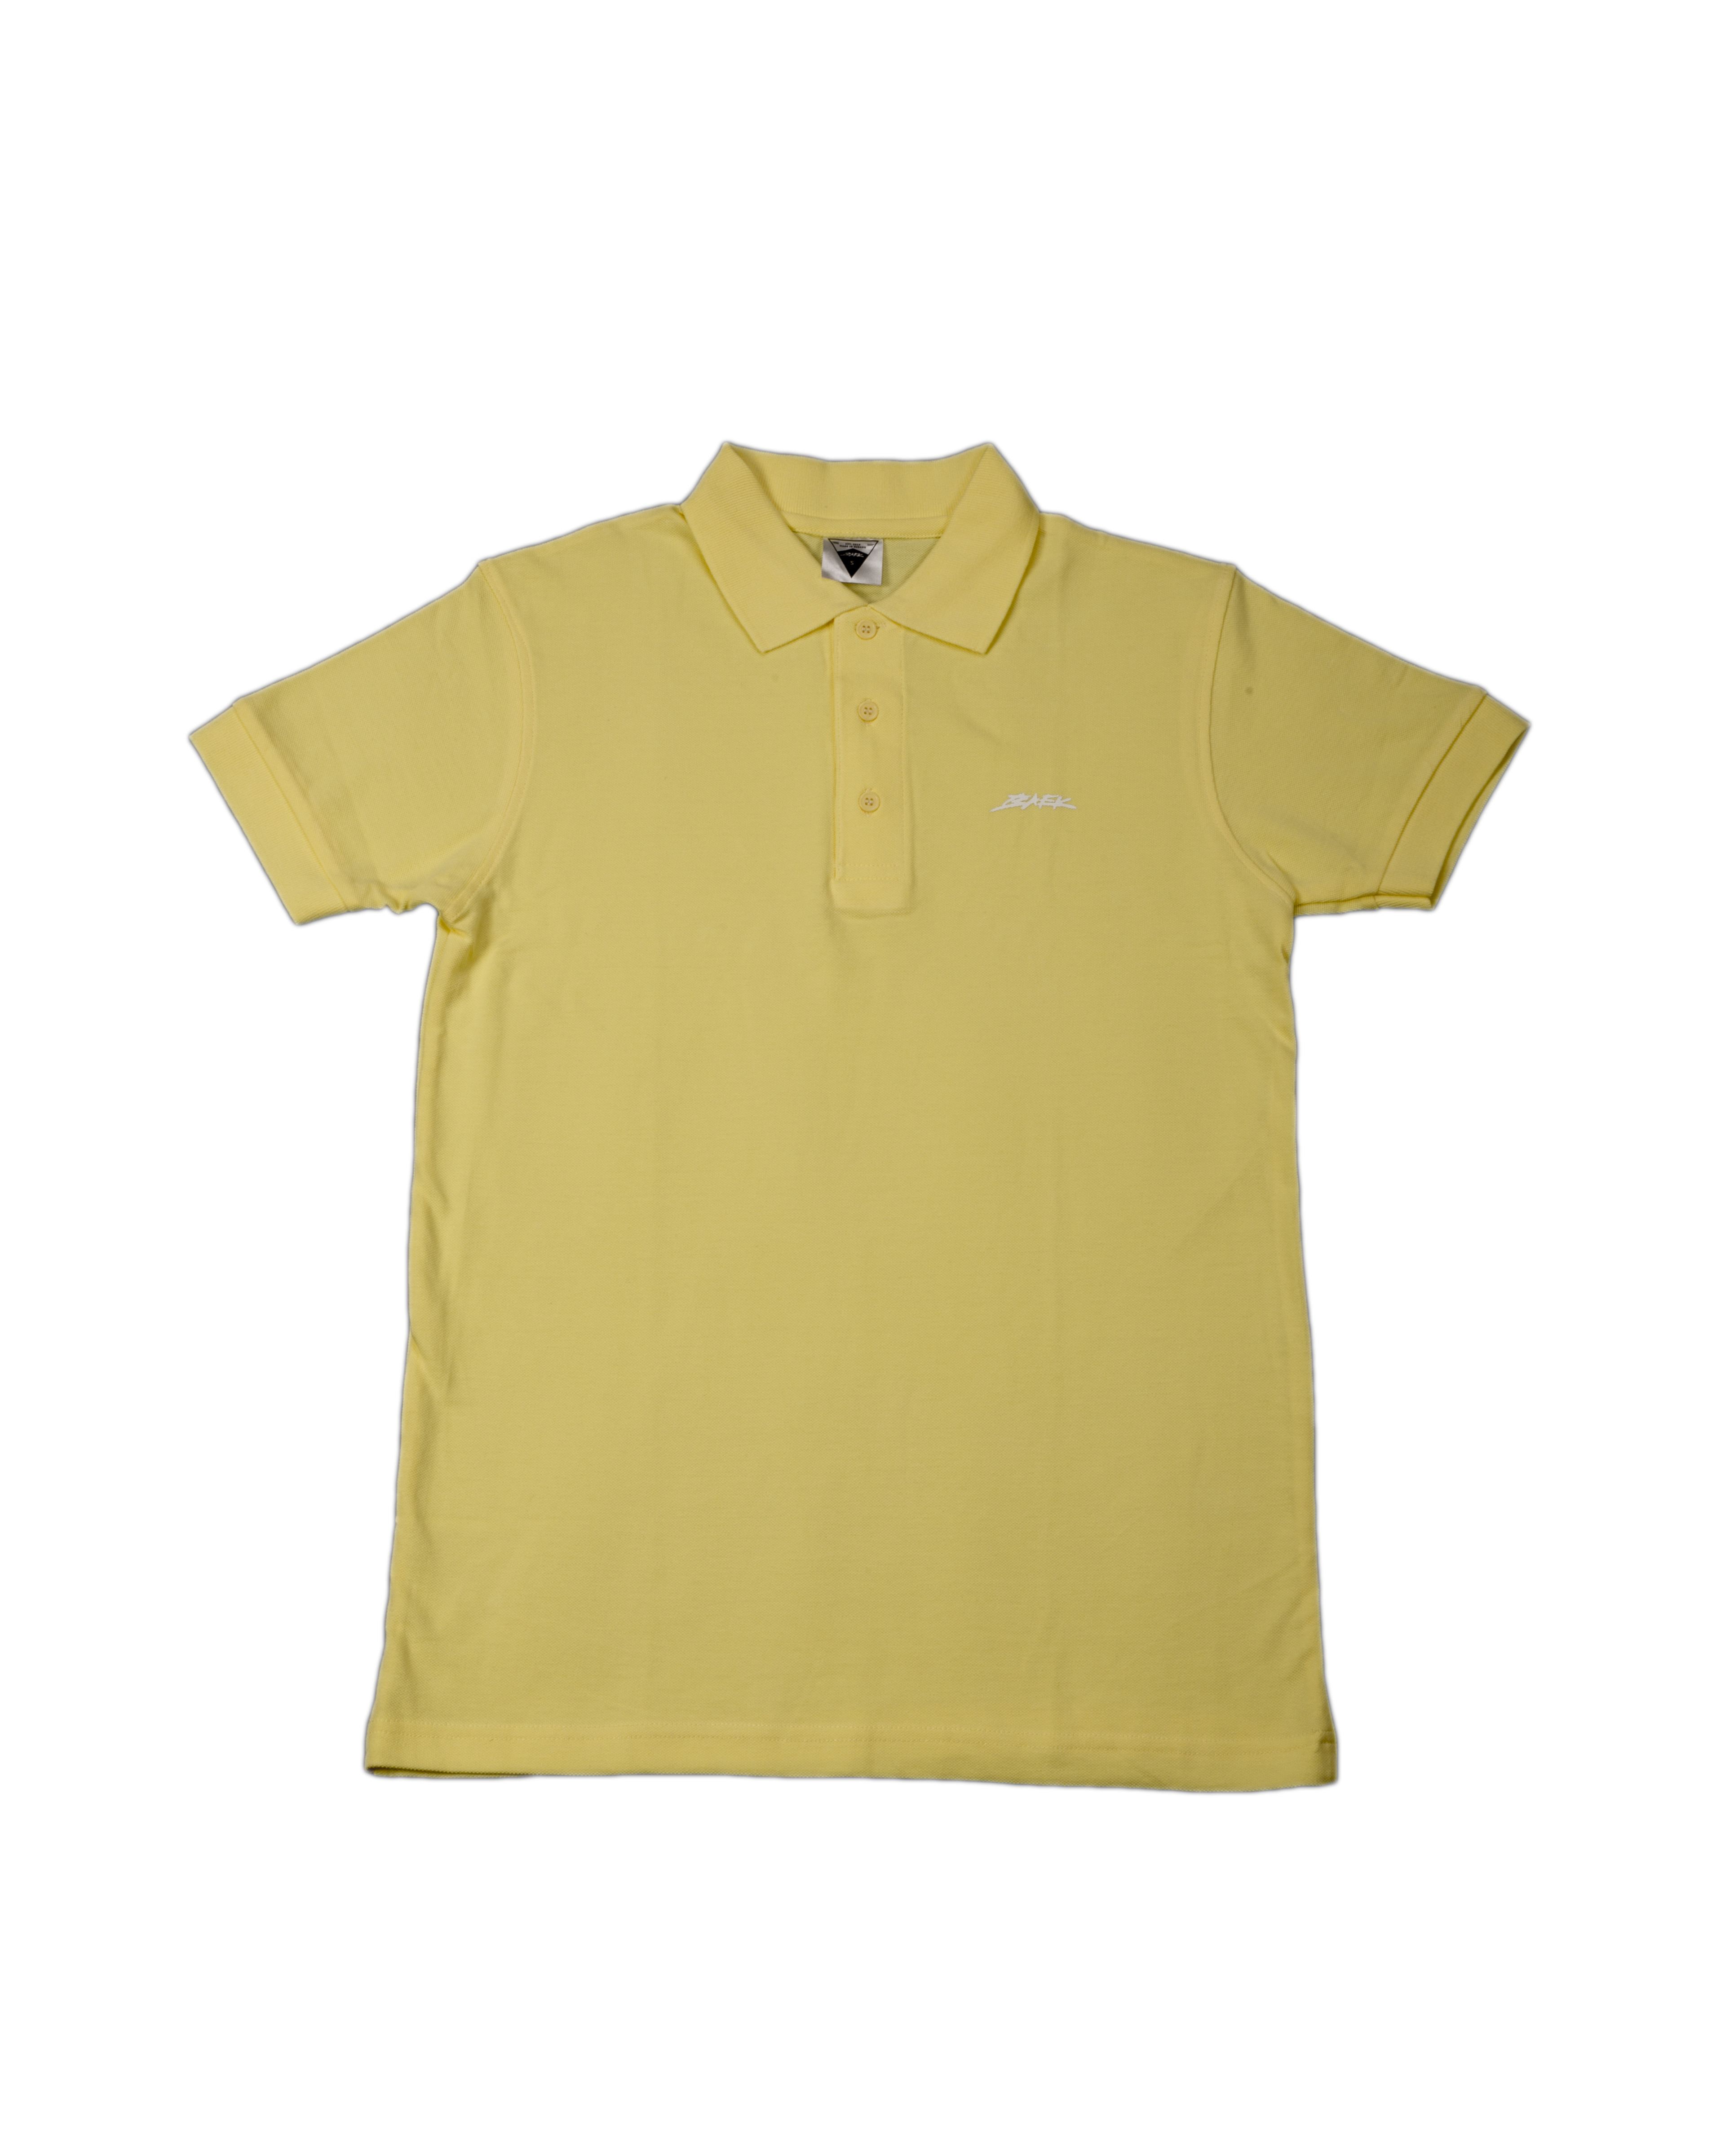 BAEK POLO SS - YELLOW